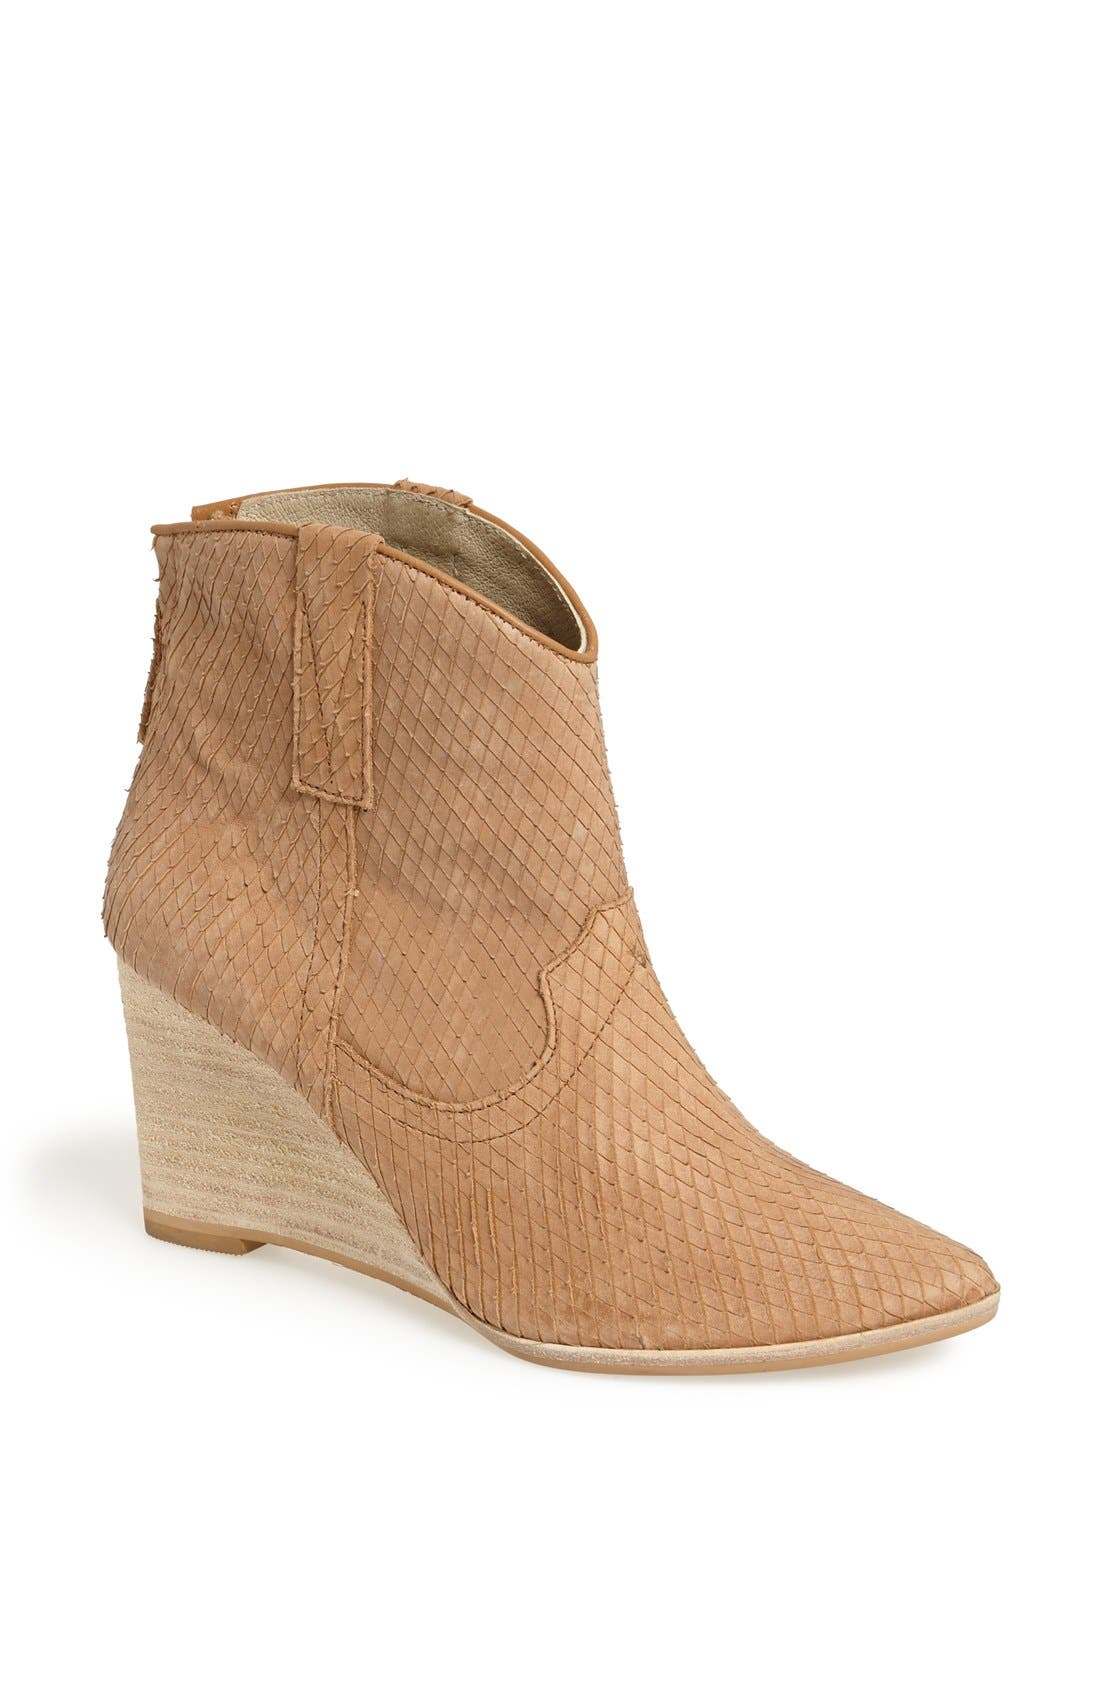 Main Image - Matisse 'Liberation' Wedge Bootie